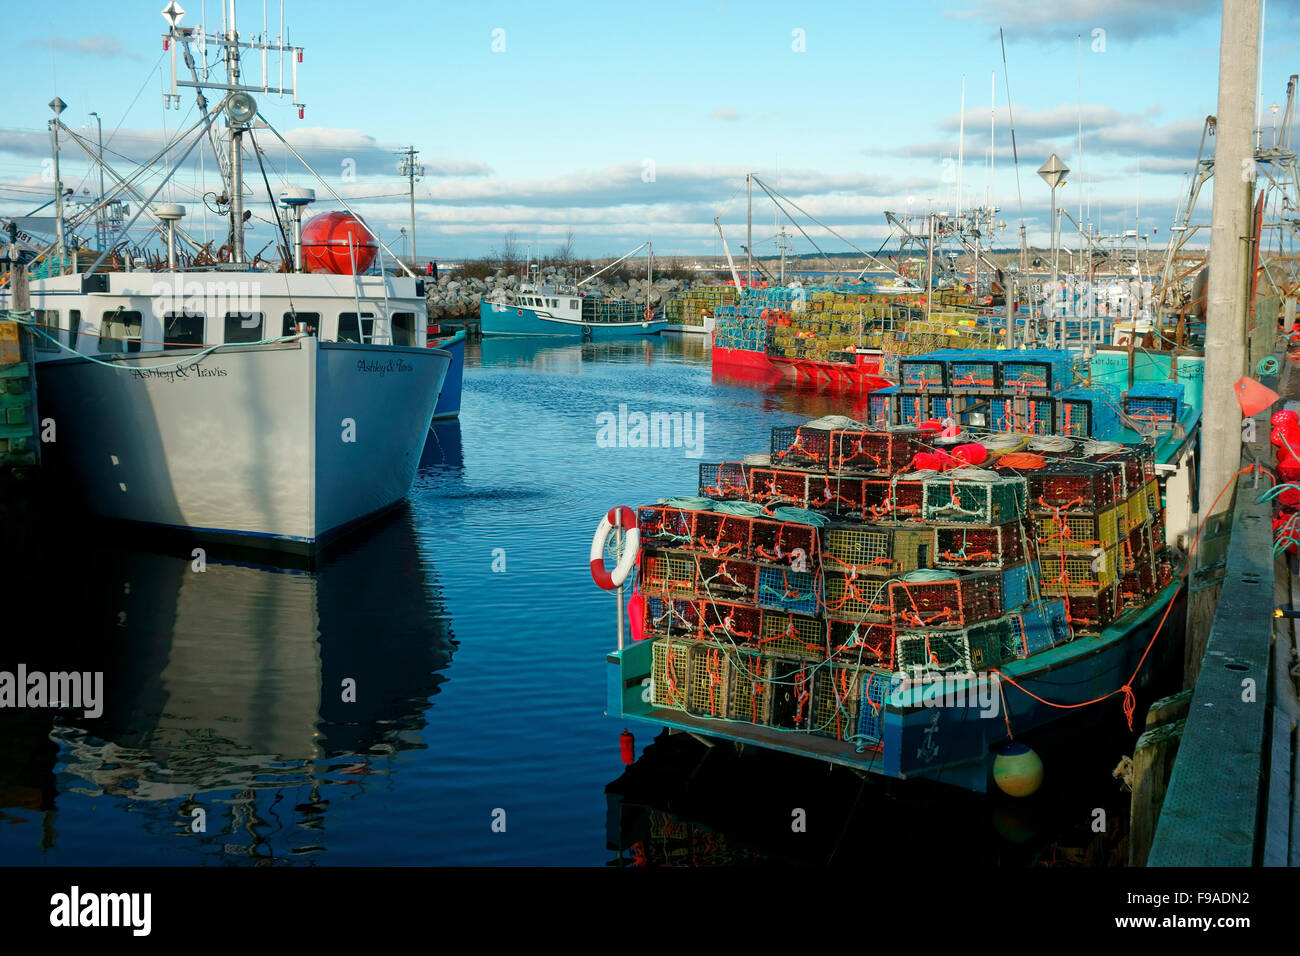 Lobster boats loaded with lobster traps just before the season opener or dumping day at Gunning Cove, Nova Scotia, - Stock Image